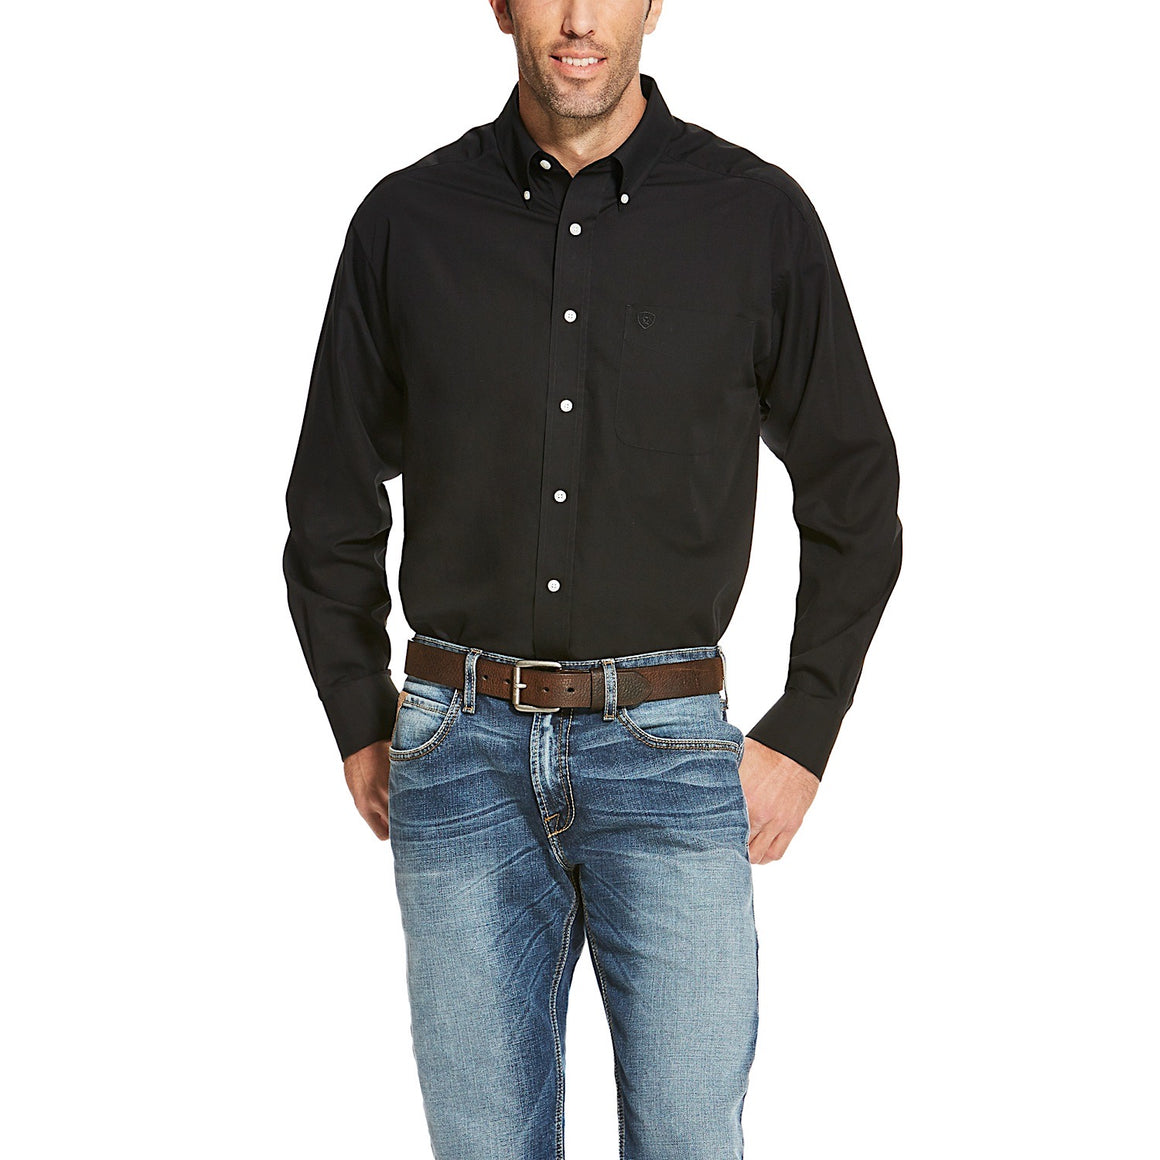 Ariat Mens Wrinkle Free Solid Classic Fit Shirt Black